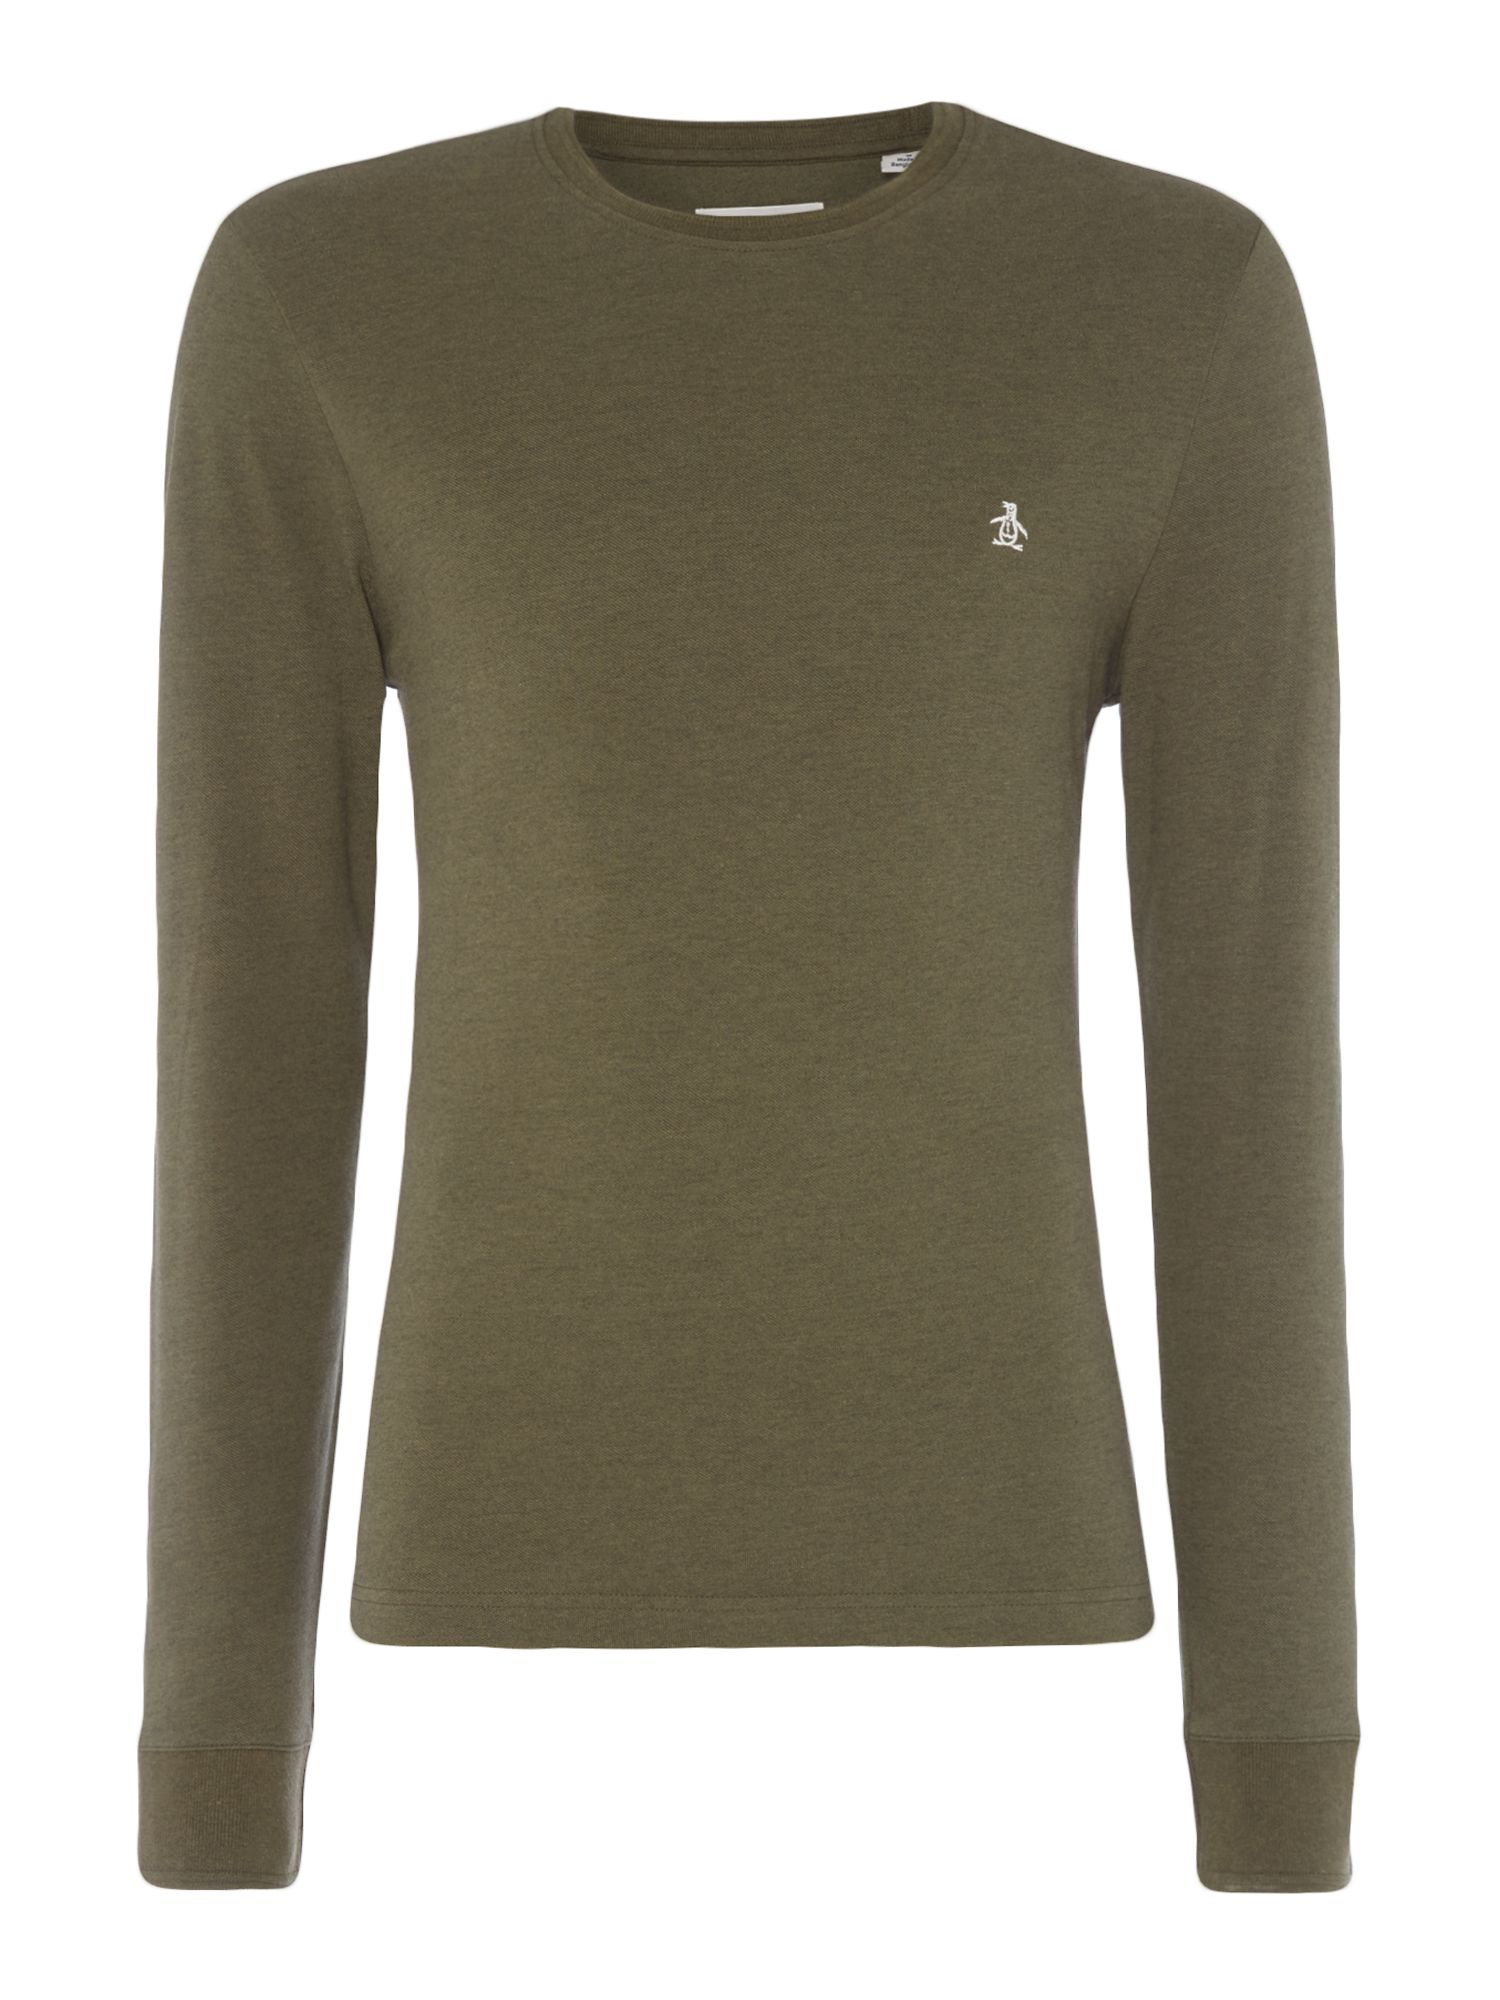 Men's Original Penguin Raised Rib Crew Neck T-Shirt, Khaki